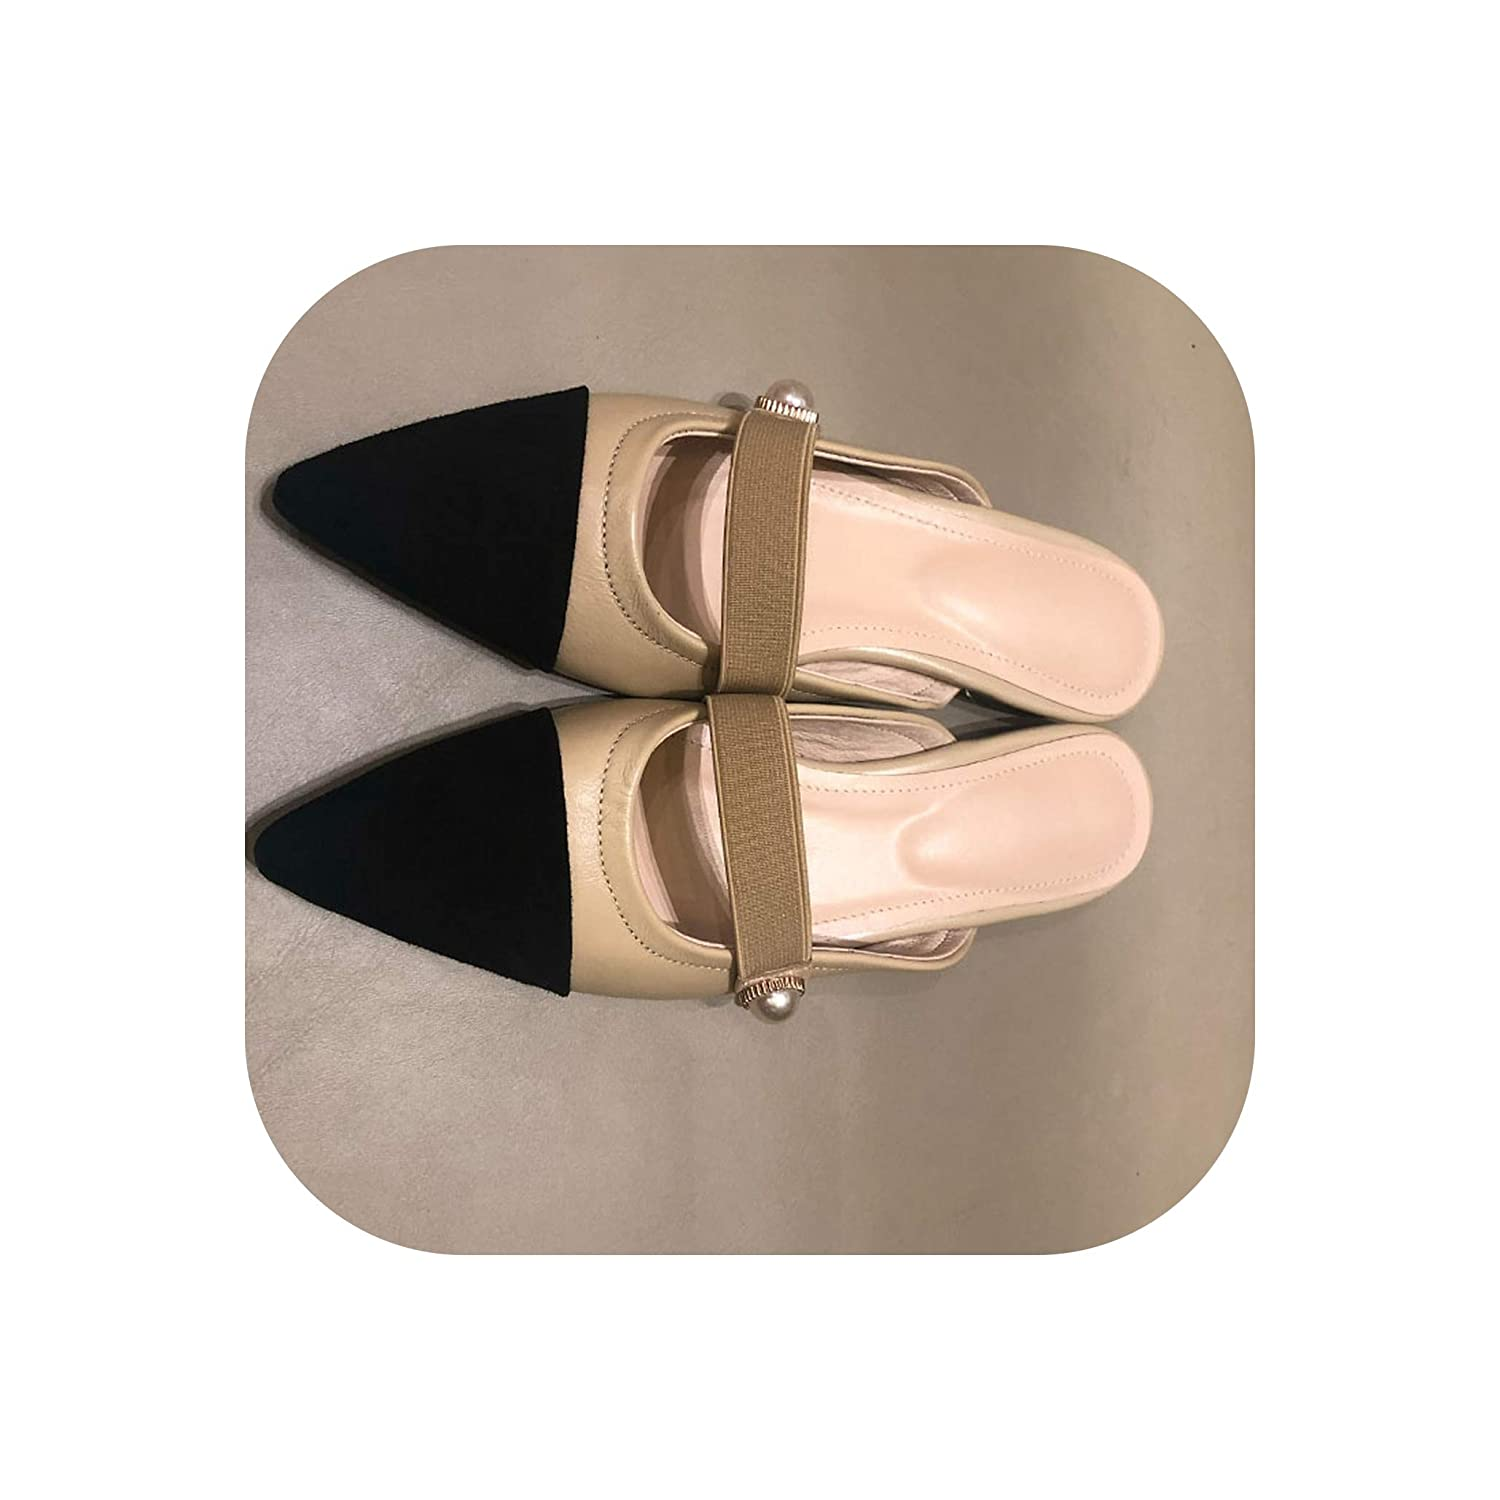 Apricot Slippers Woman Small Fragrance Women Slides shoes Female Sheepskin Flat MUL,